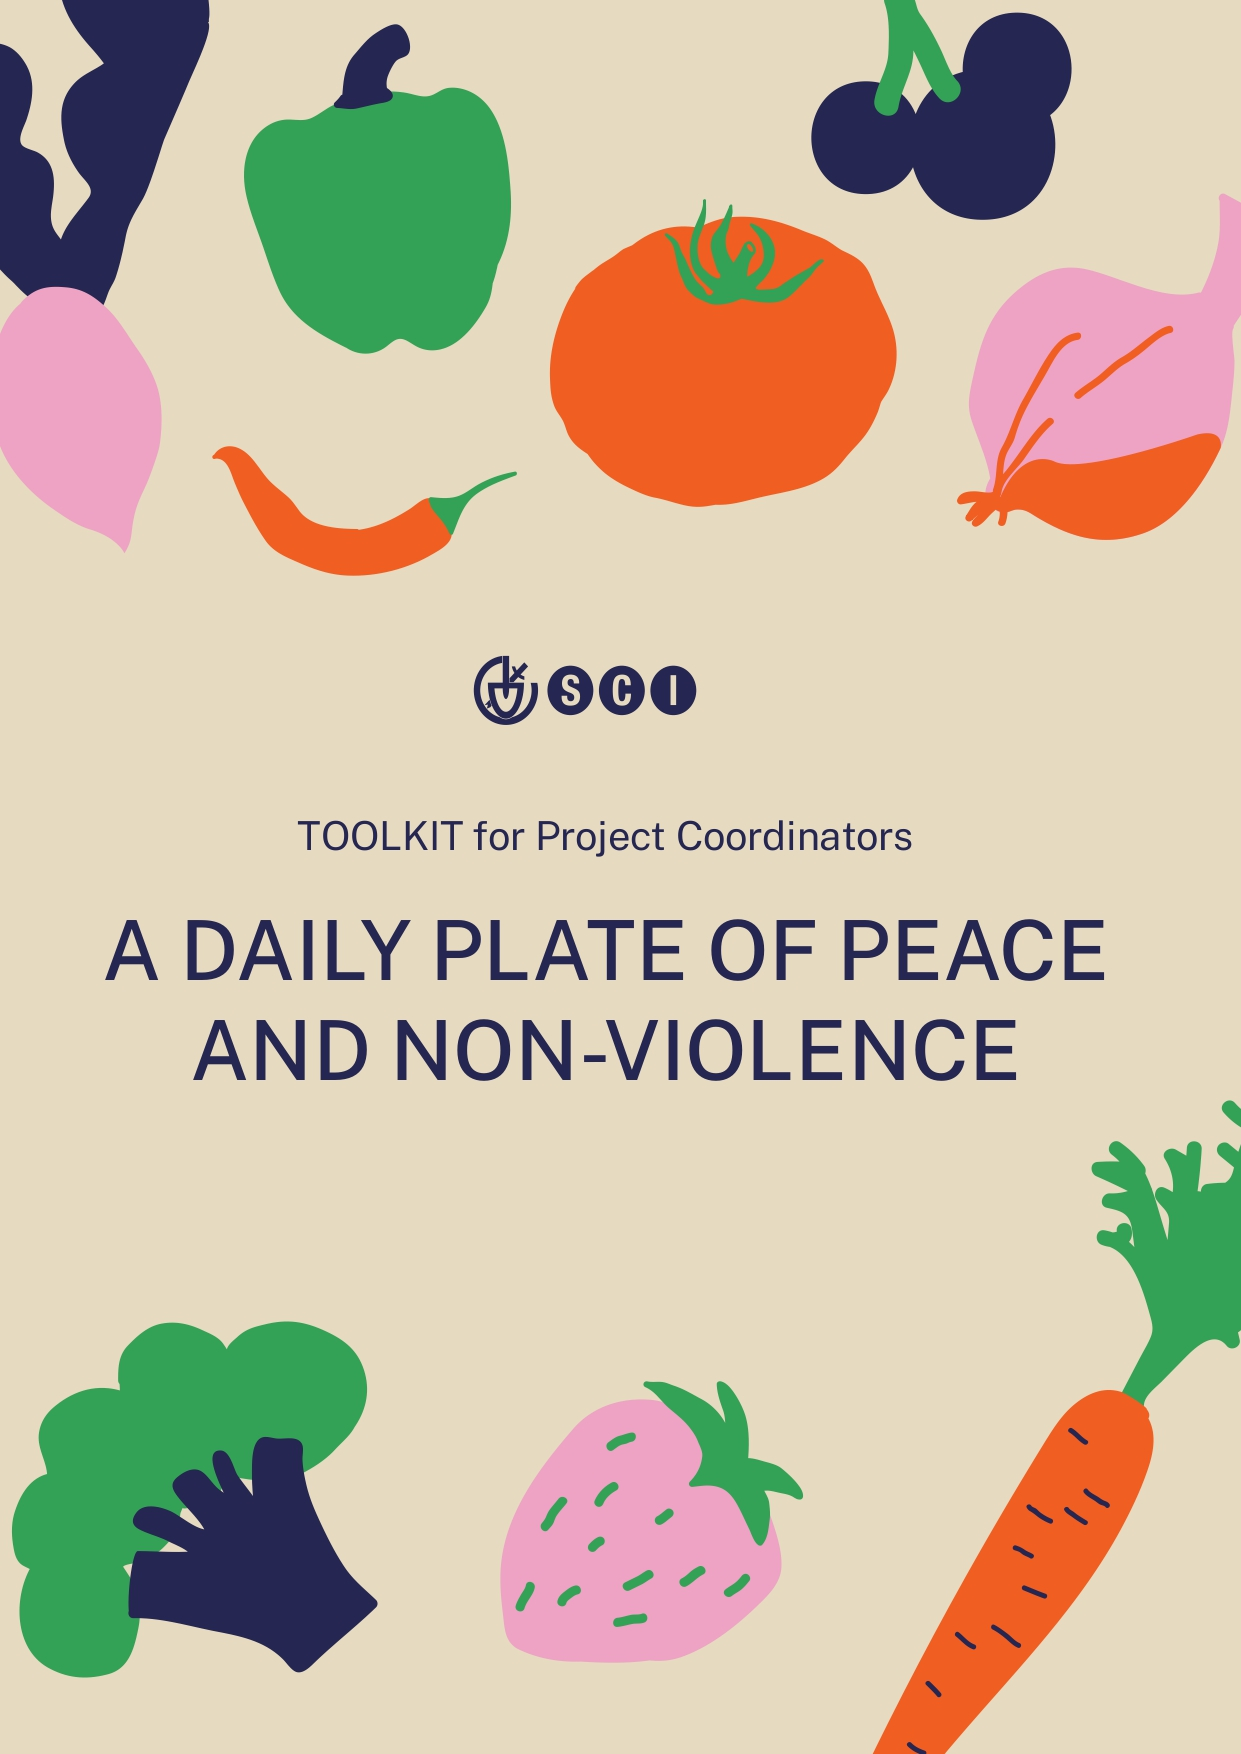 A daily plate of peace and non-violence: Toolkit